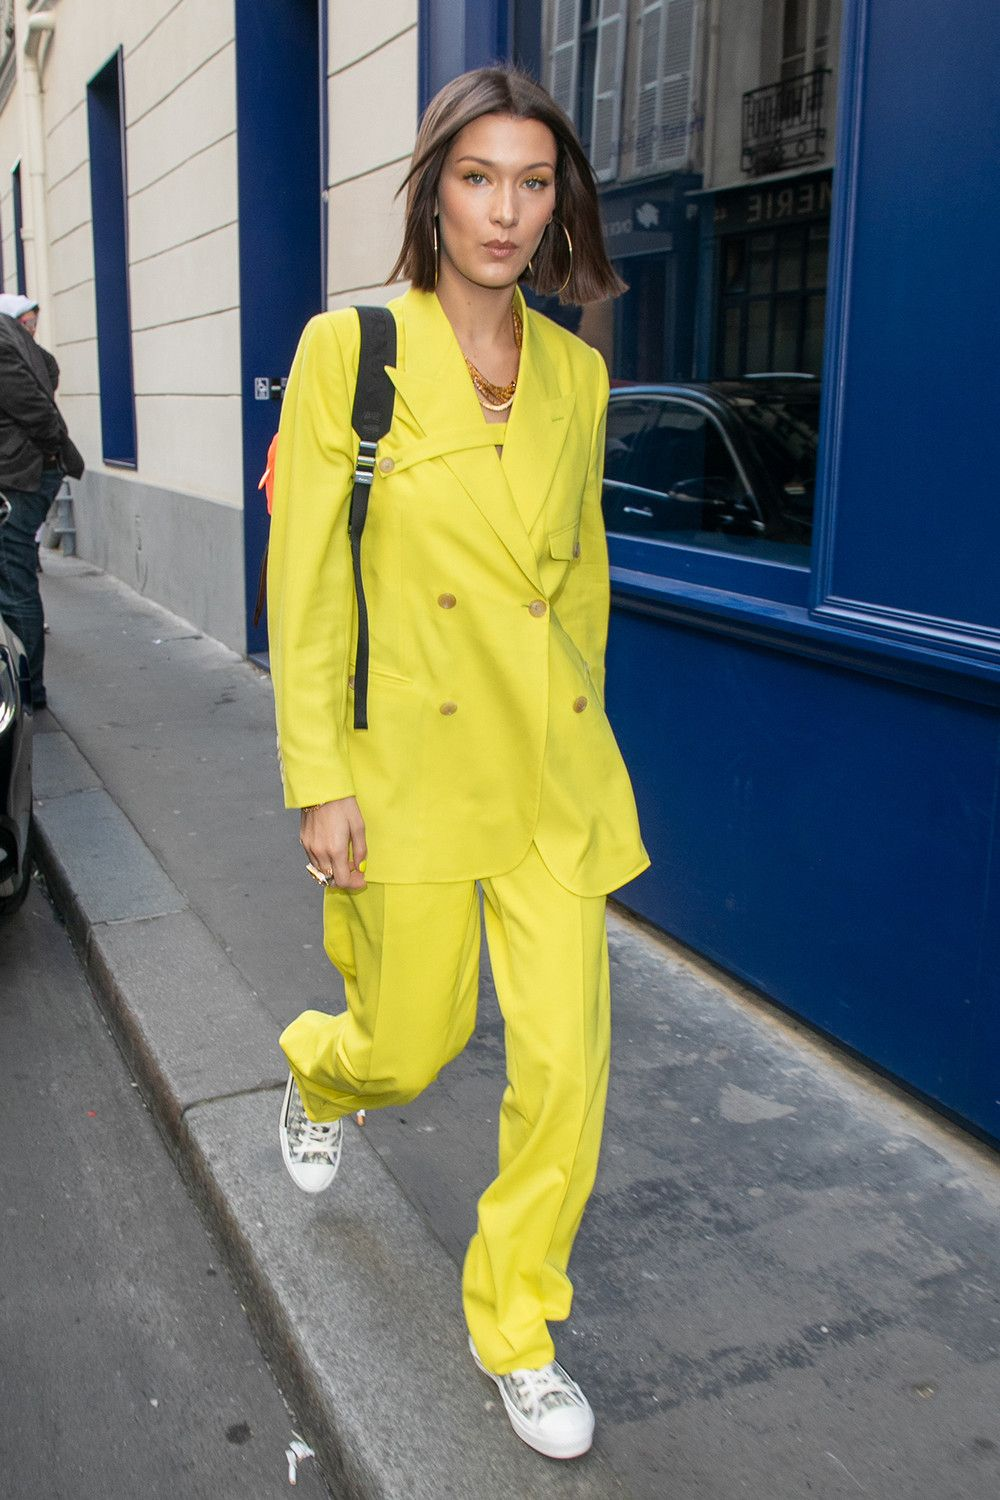 291bbe35c8a Bella Hadid Dior Homme Men Yellow Suit Fluorescent Prada Backpack Sneakers  Paris Fashion Week